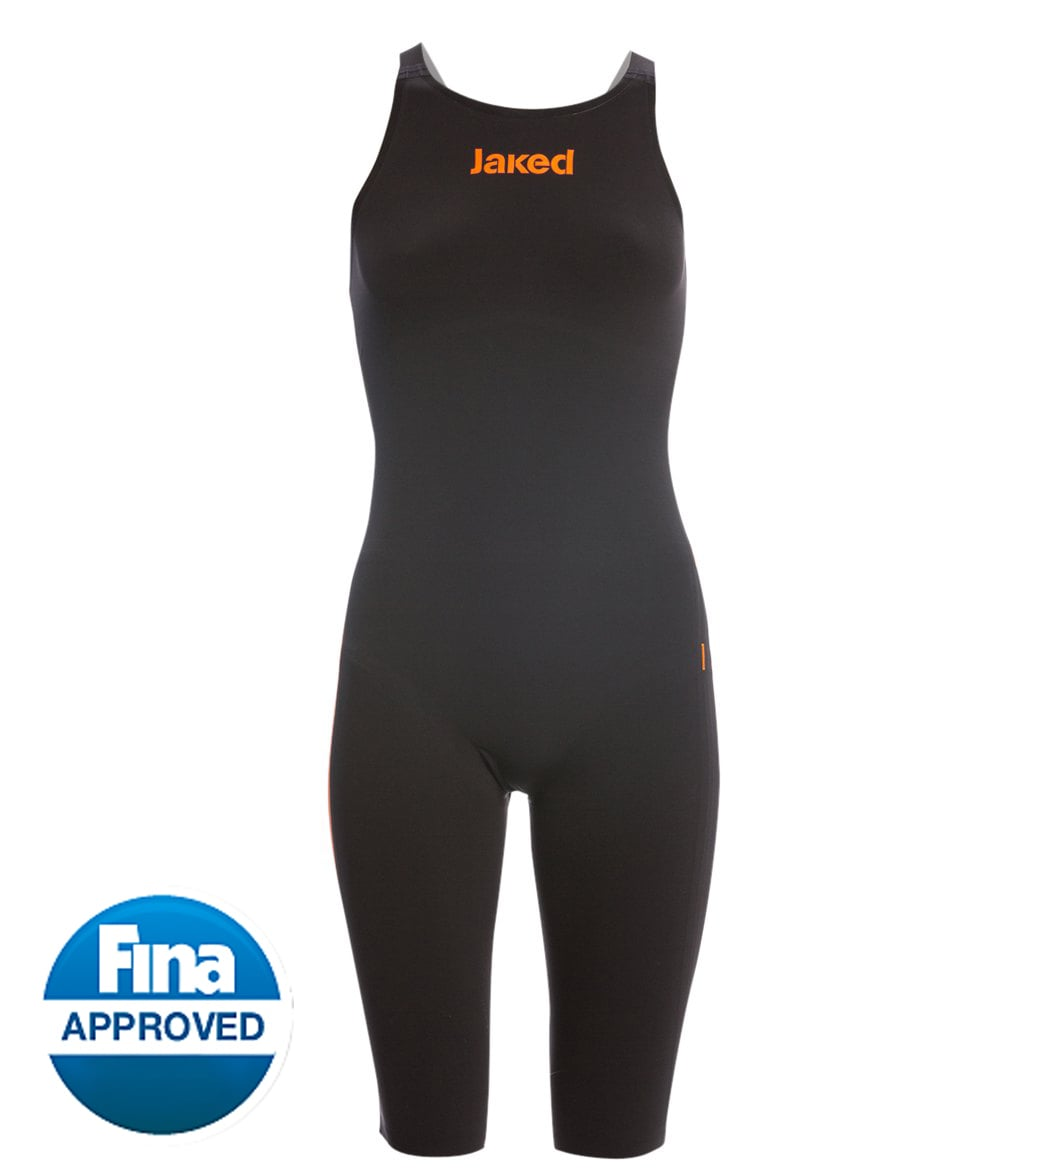 Jaked Jkeel women's budget tech suit